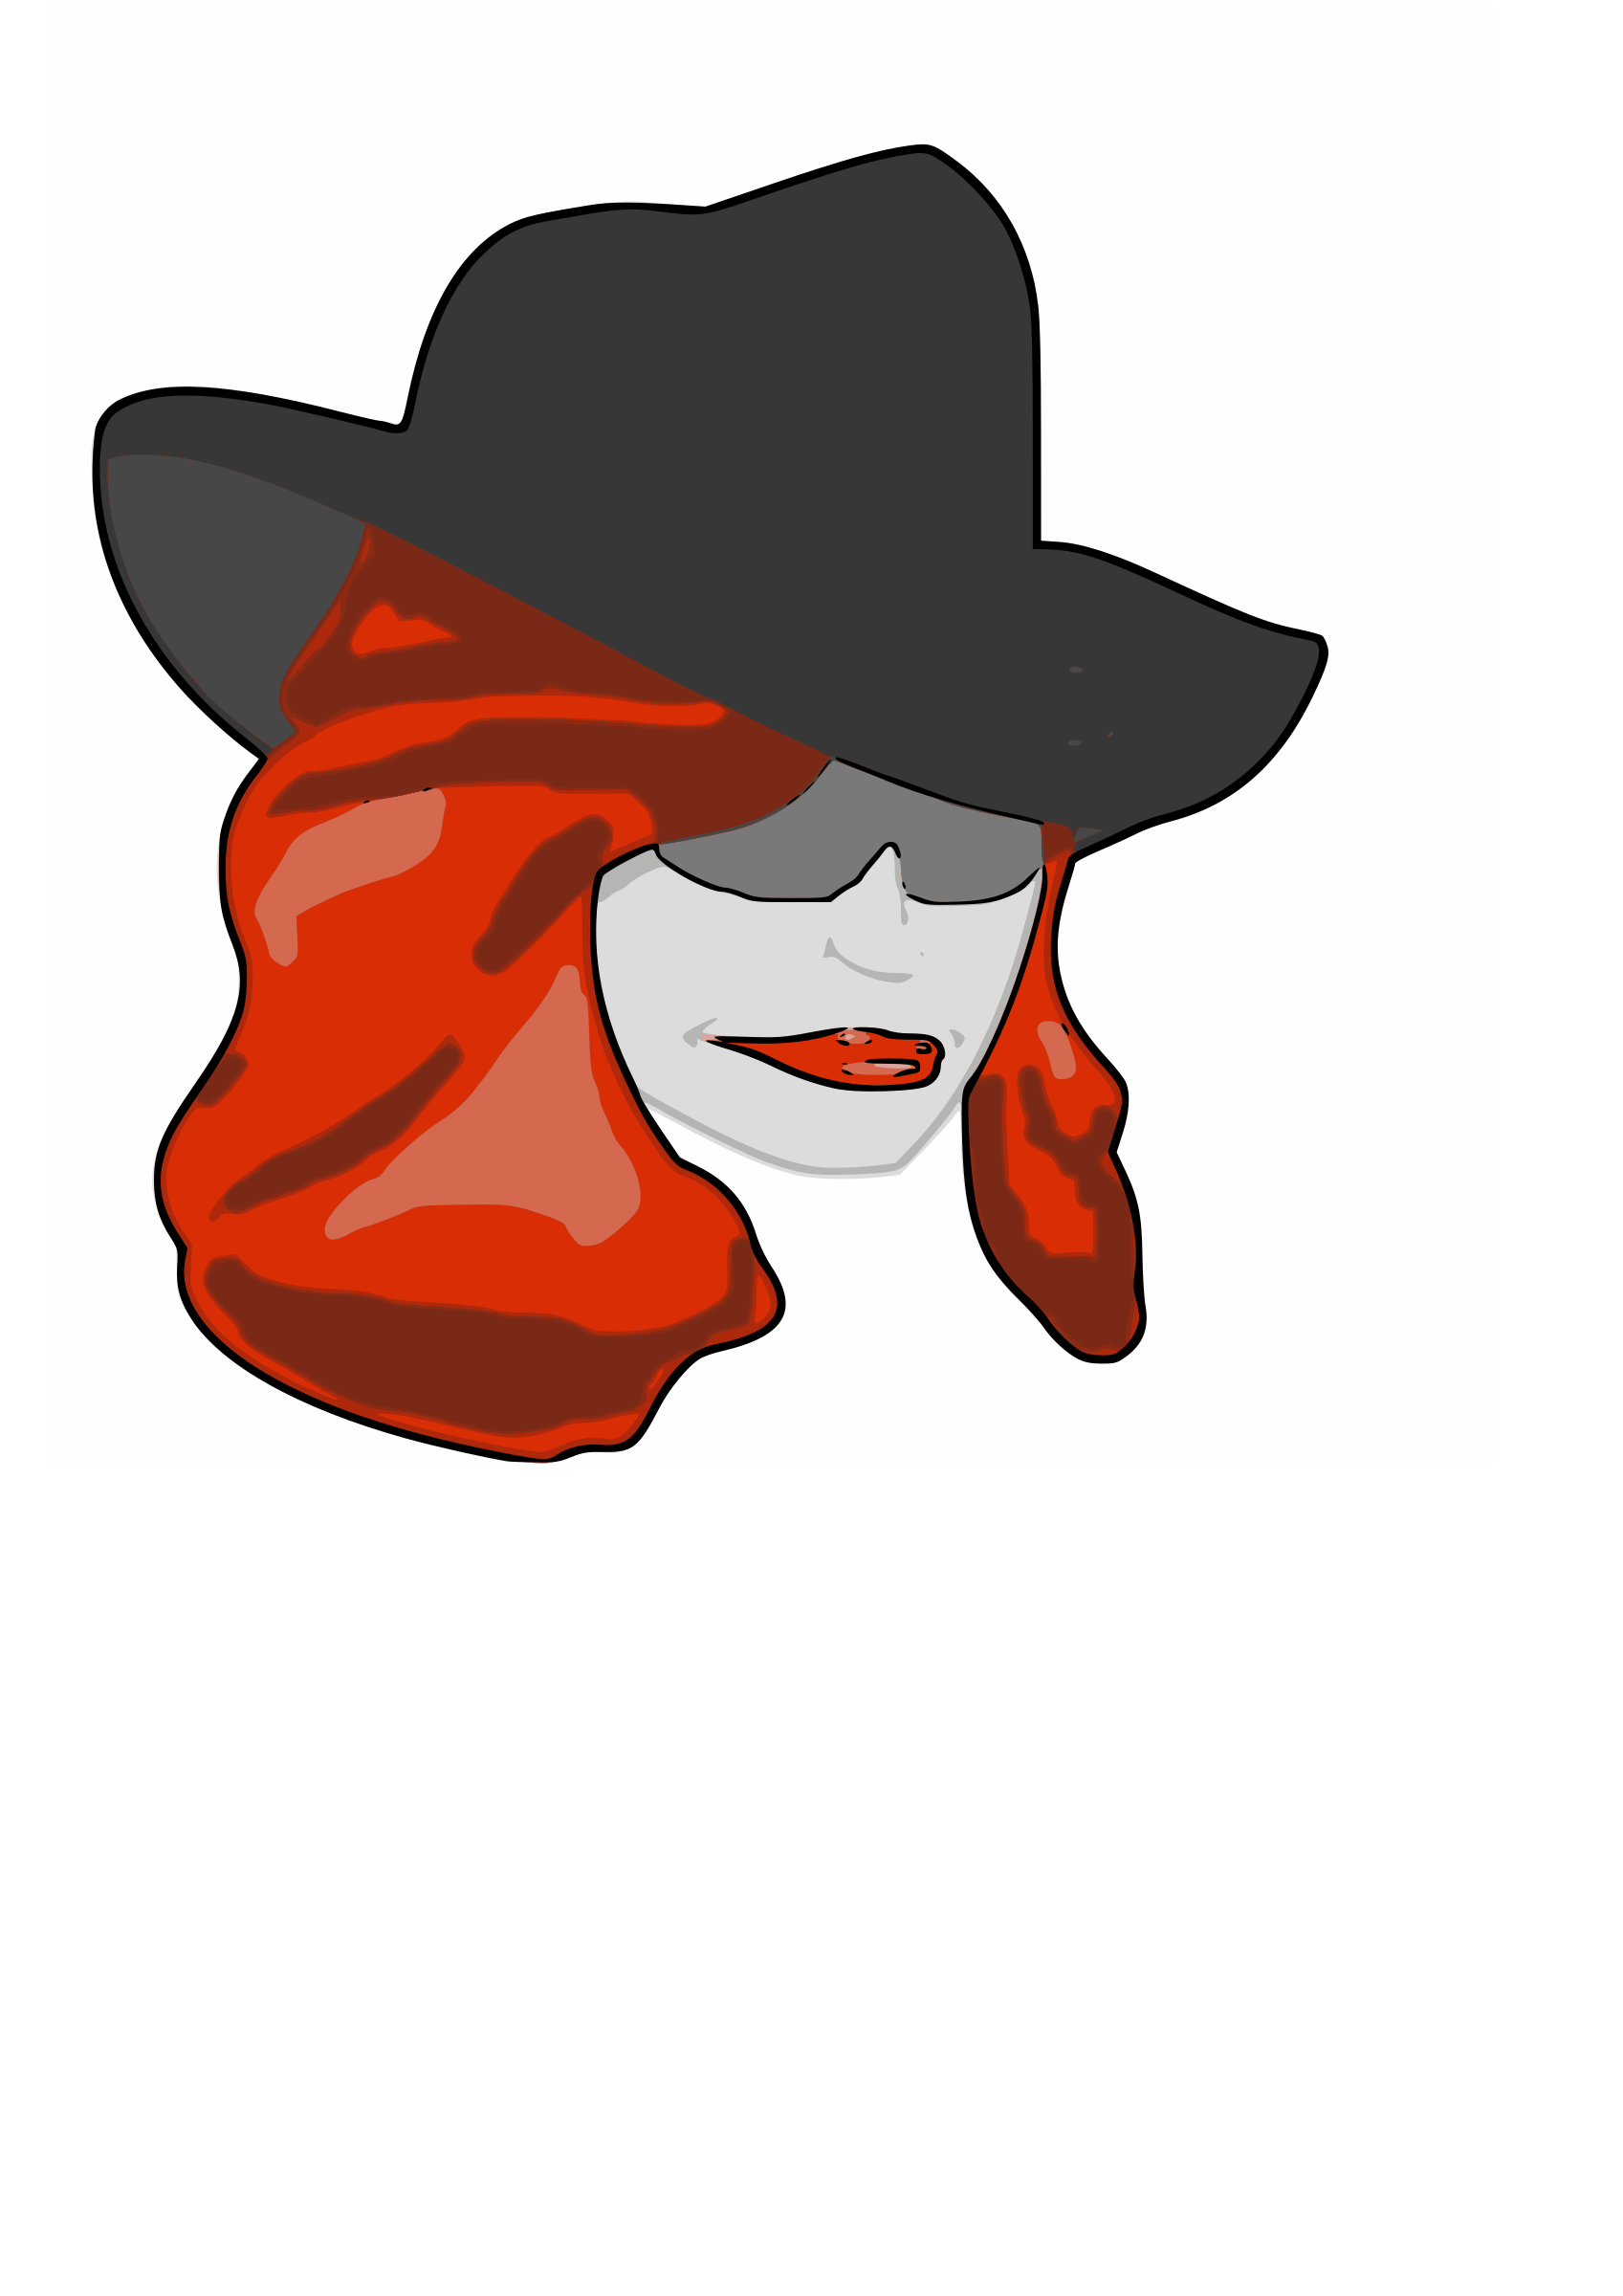 Fox clipart detective. Female big image png